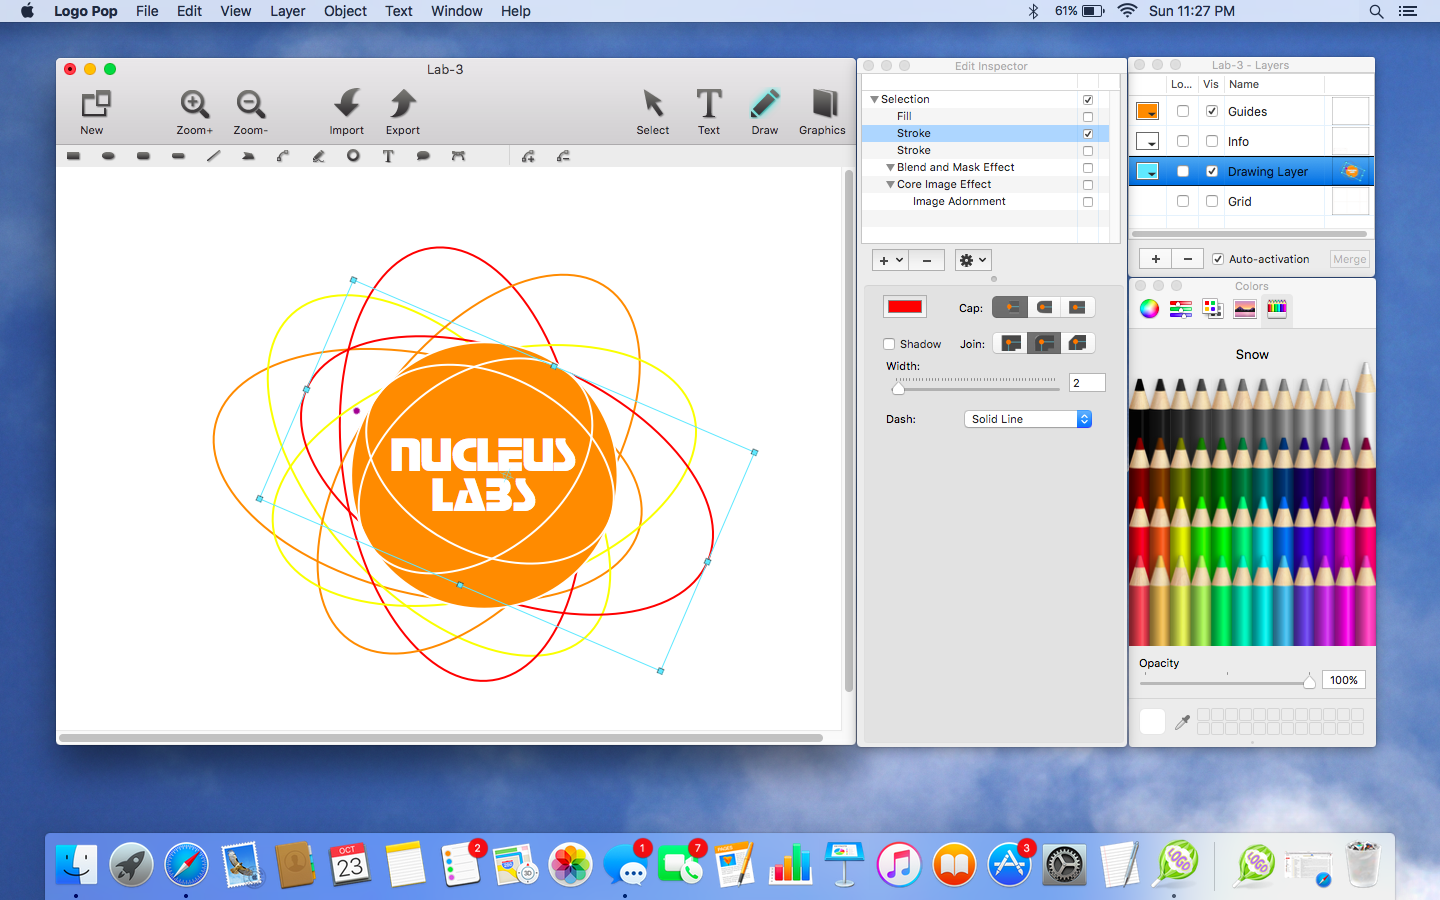 Logo Pop Adds 250 New Editable Graphics To Make Logo Design Even Easier Image